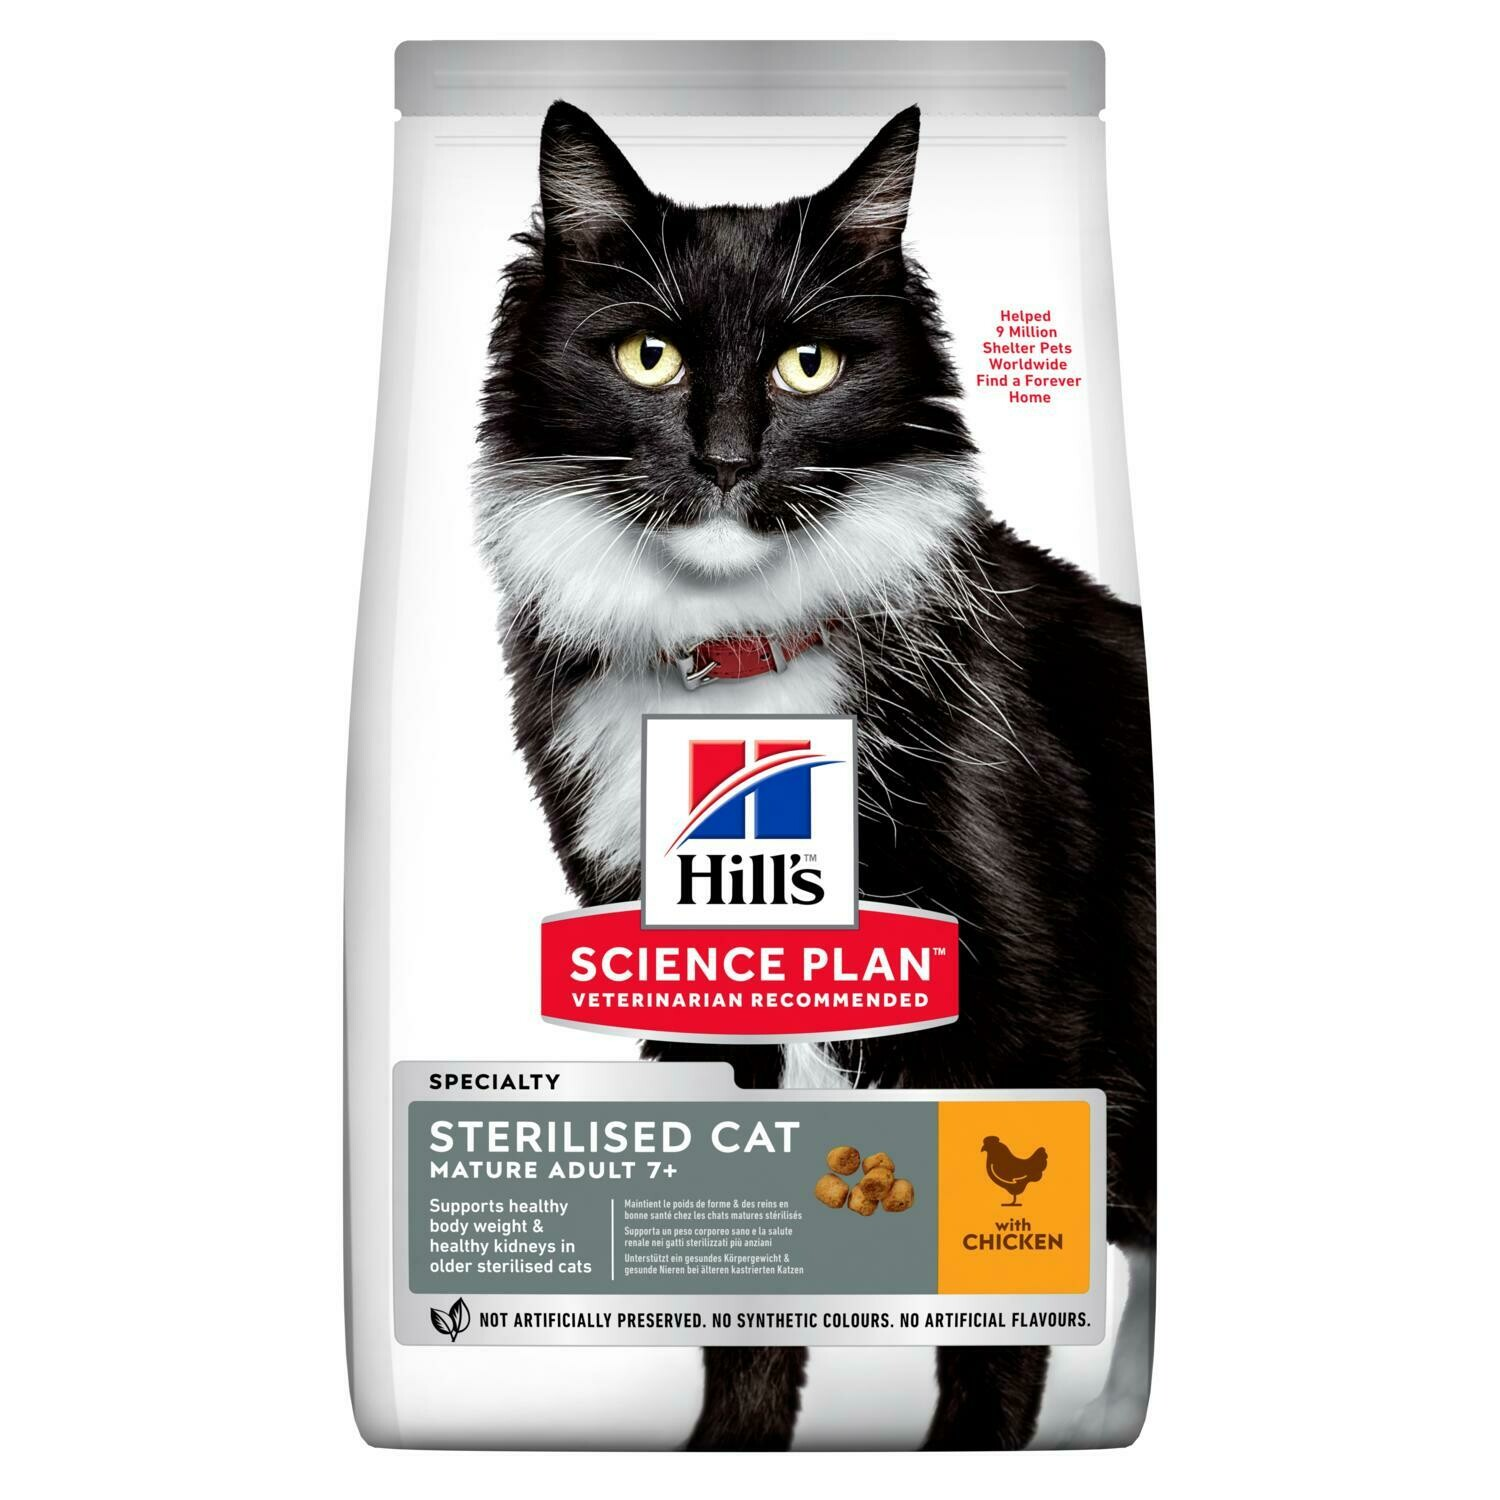 Hill's Science Plan Mature Adult Sterilised Cat Dry Food Chicken Flavour